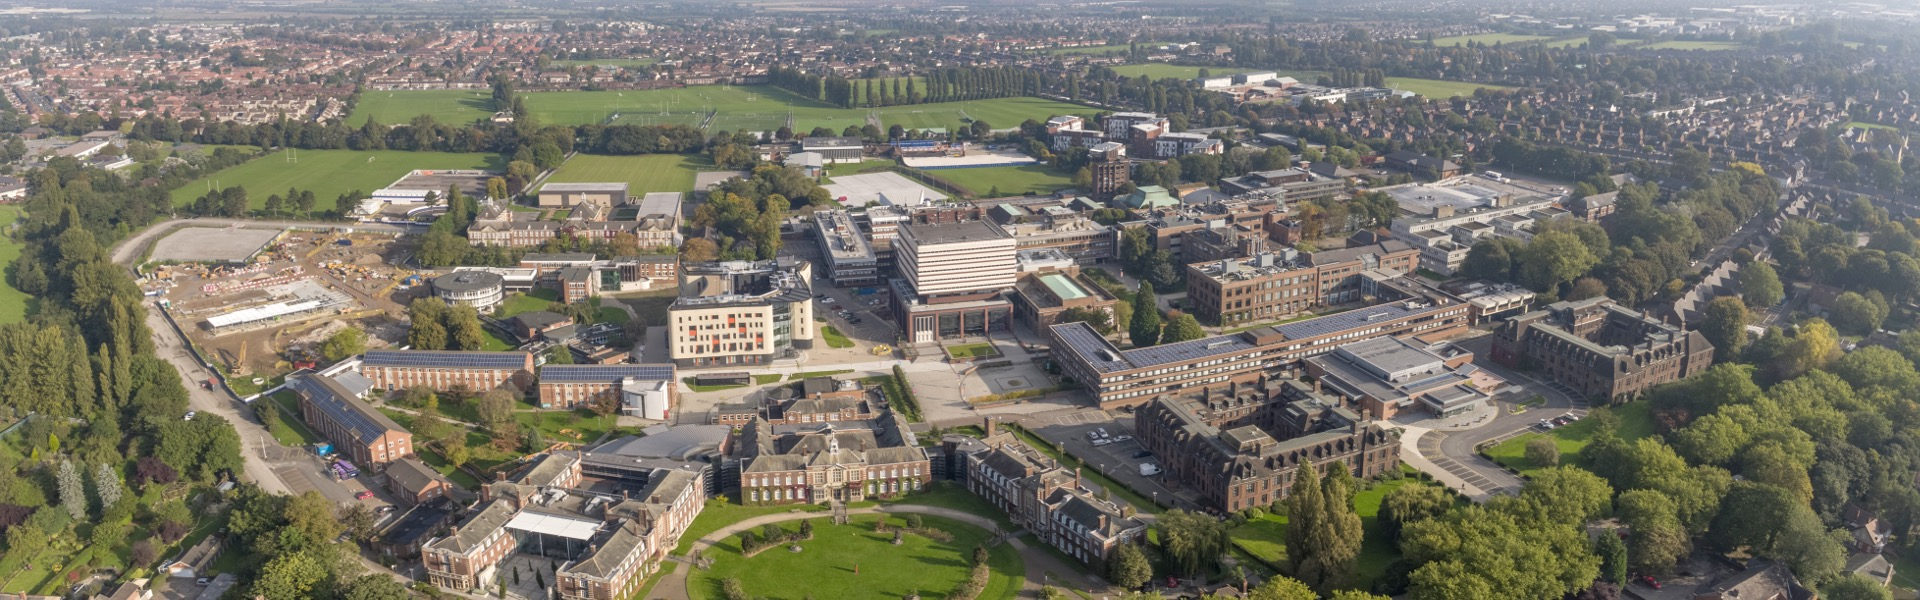 Aerial view of University of Hull campus